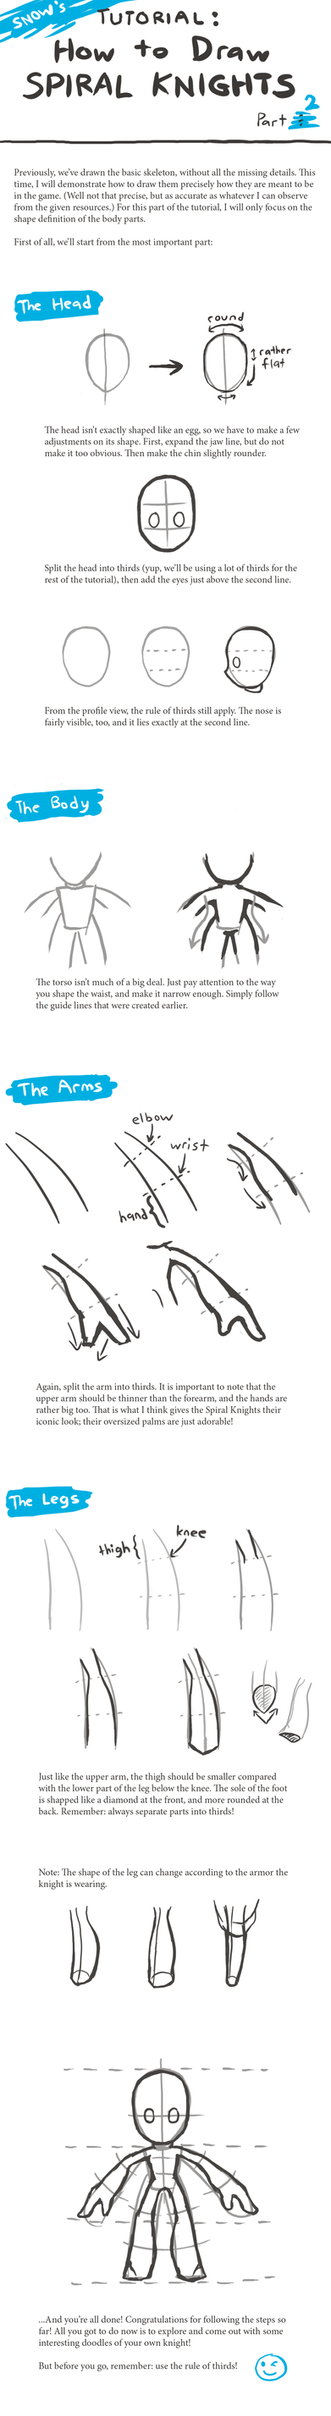 How to Draw Spiral Knights! - Part 2 by snowcube94